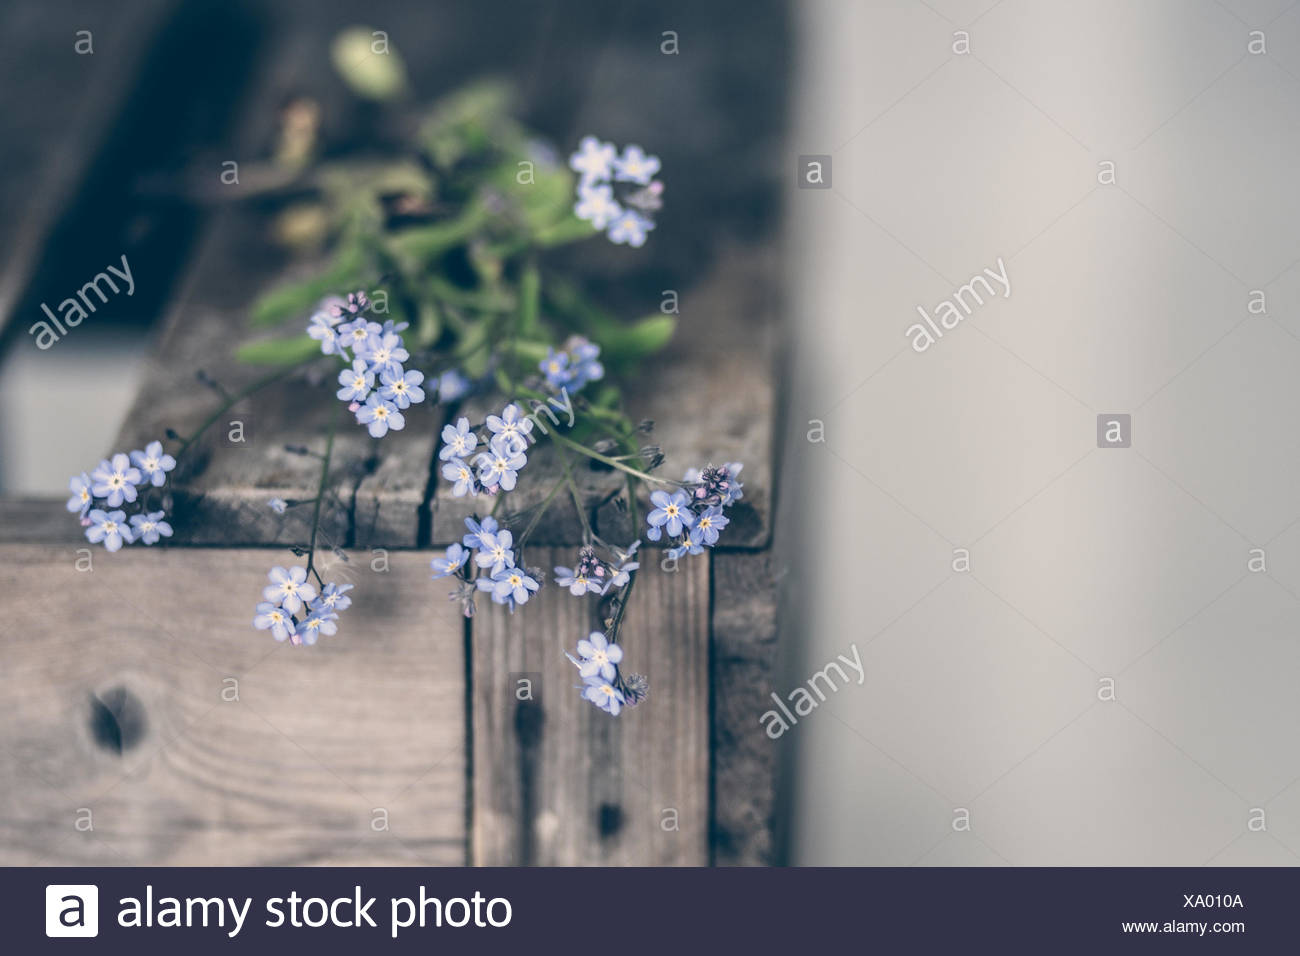 Norway, Forget Me Not flower - Stock Image